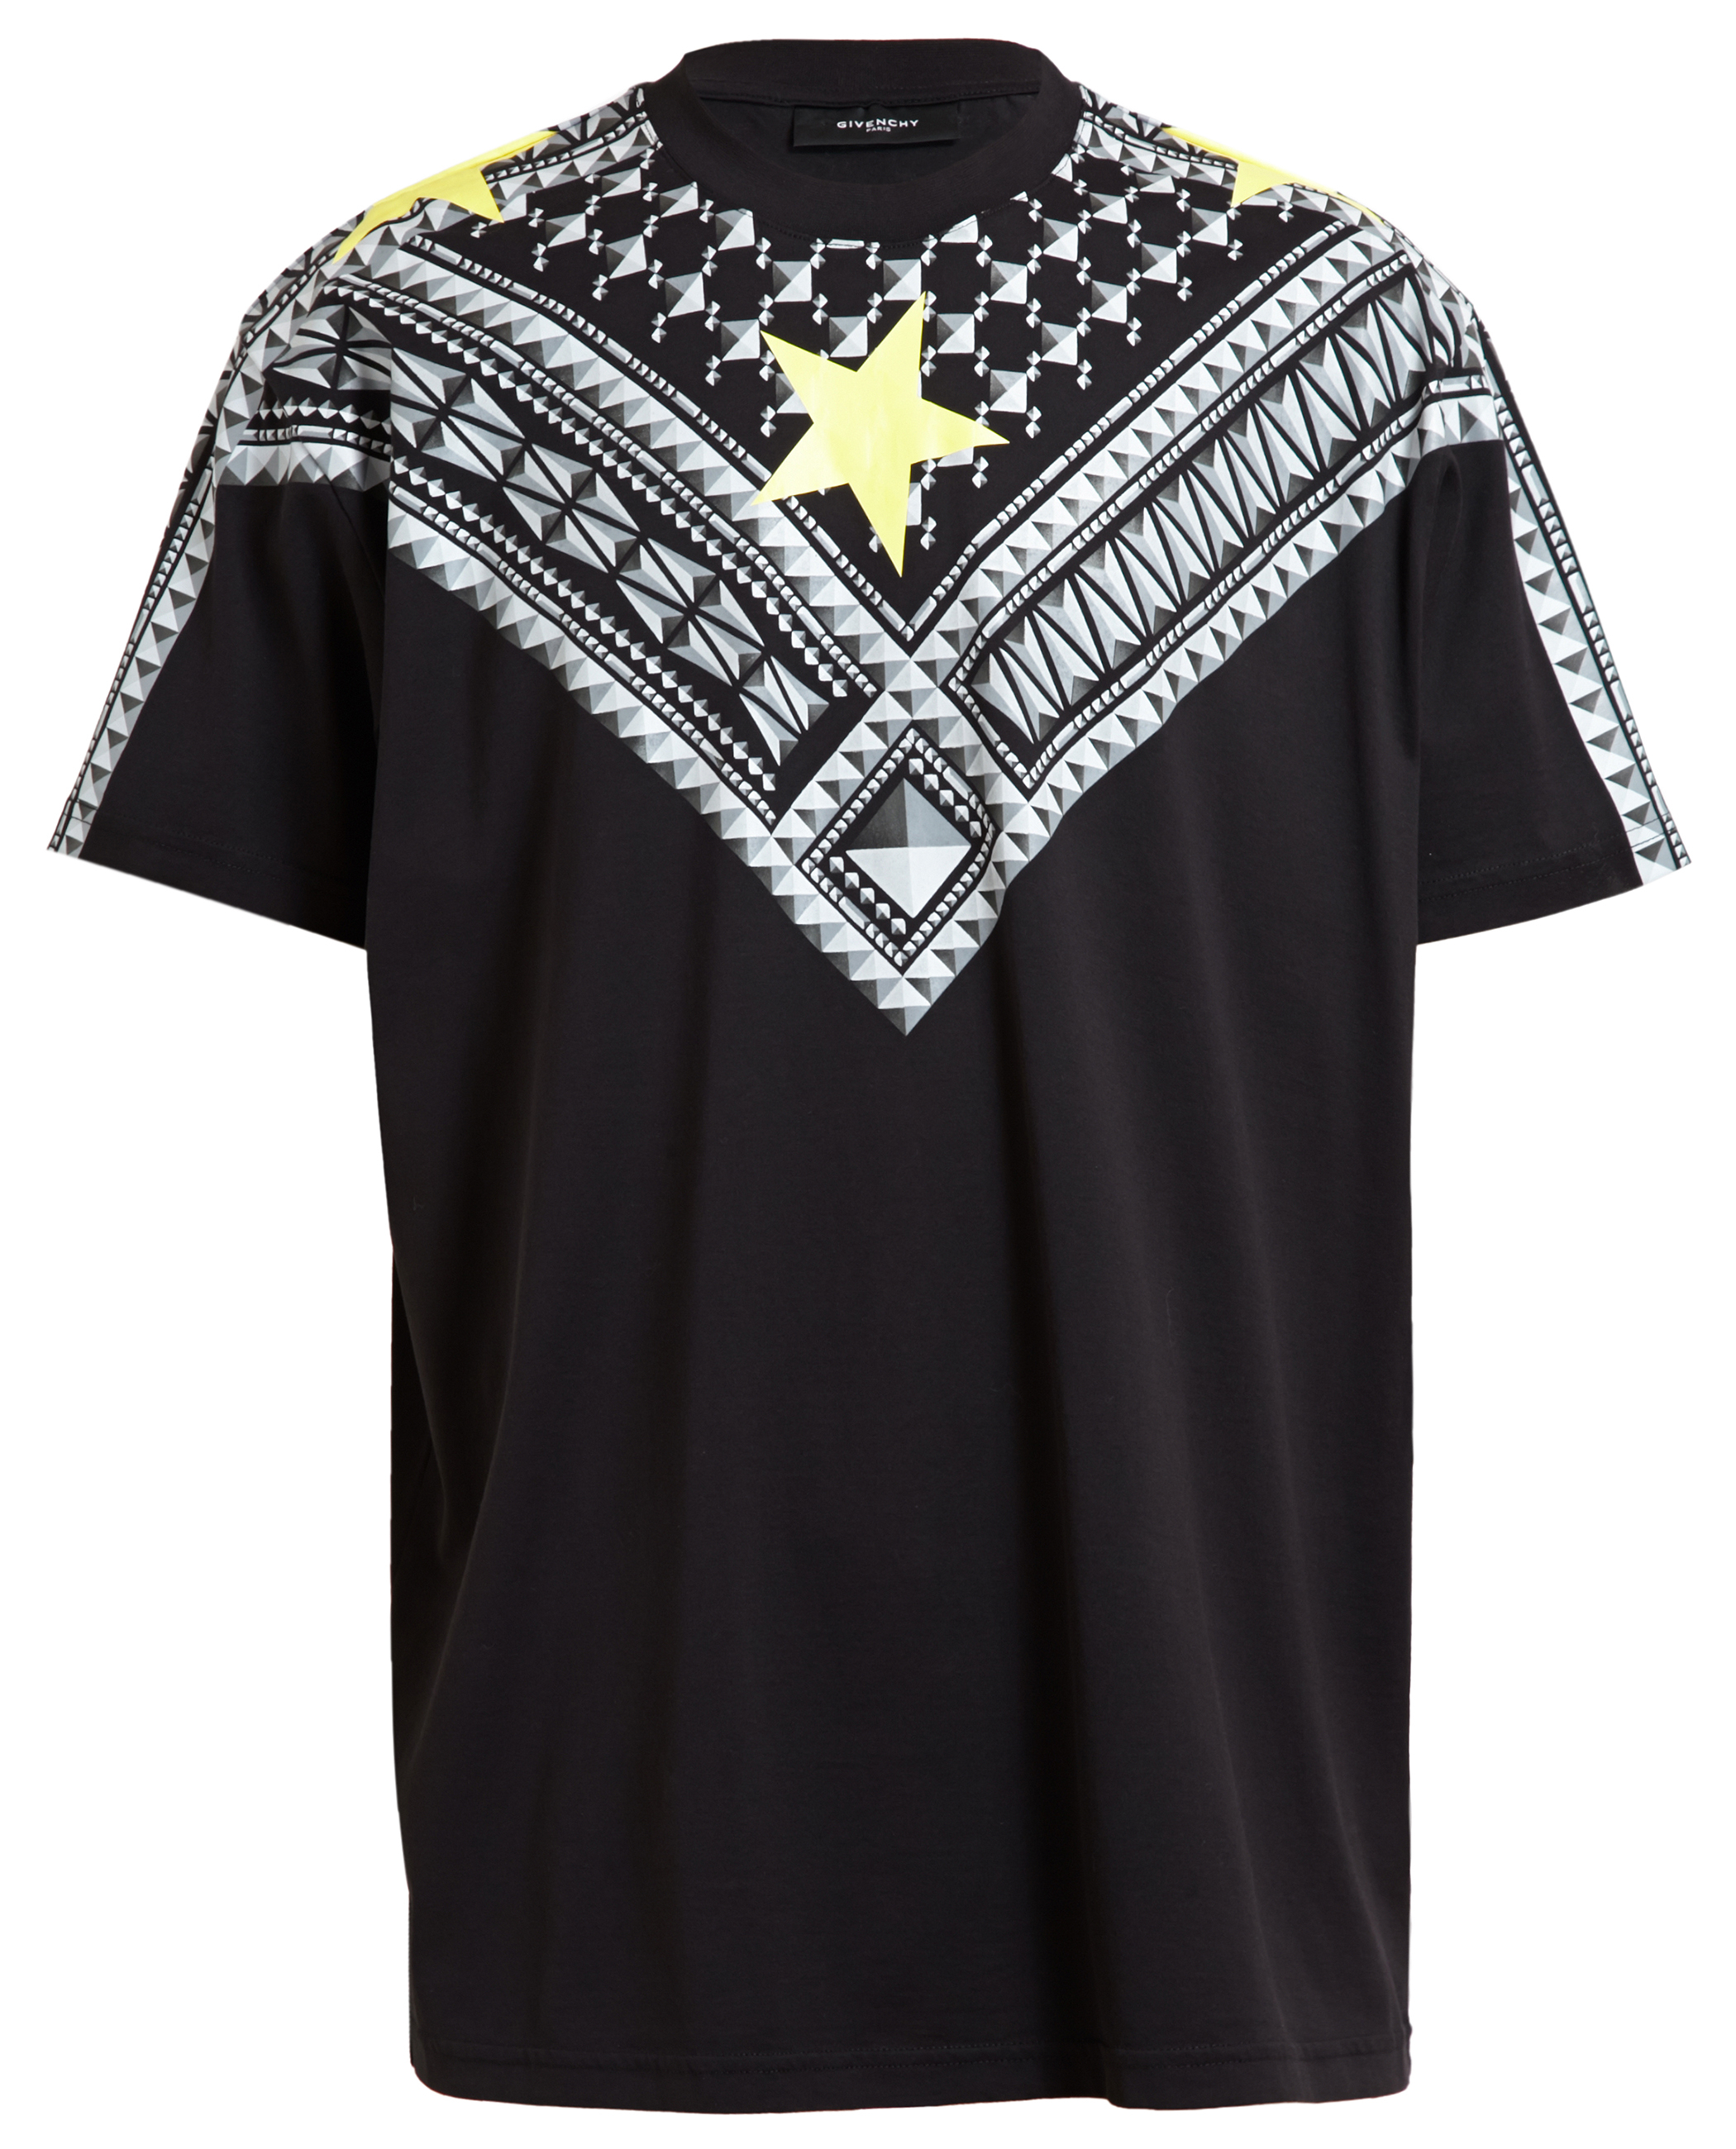 Givenchy yellow star tshirt in black for men lyst for Givenchy star t shirt